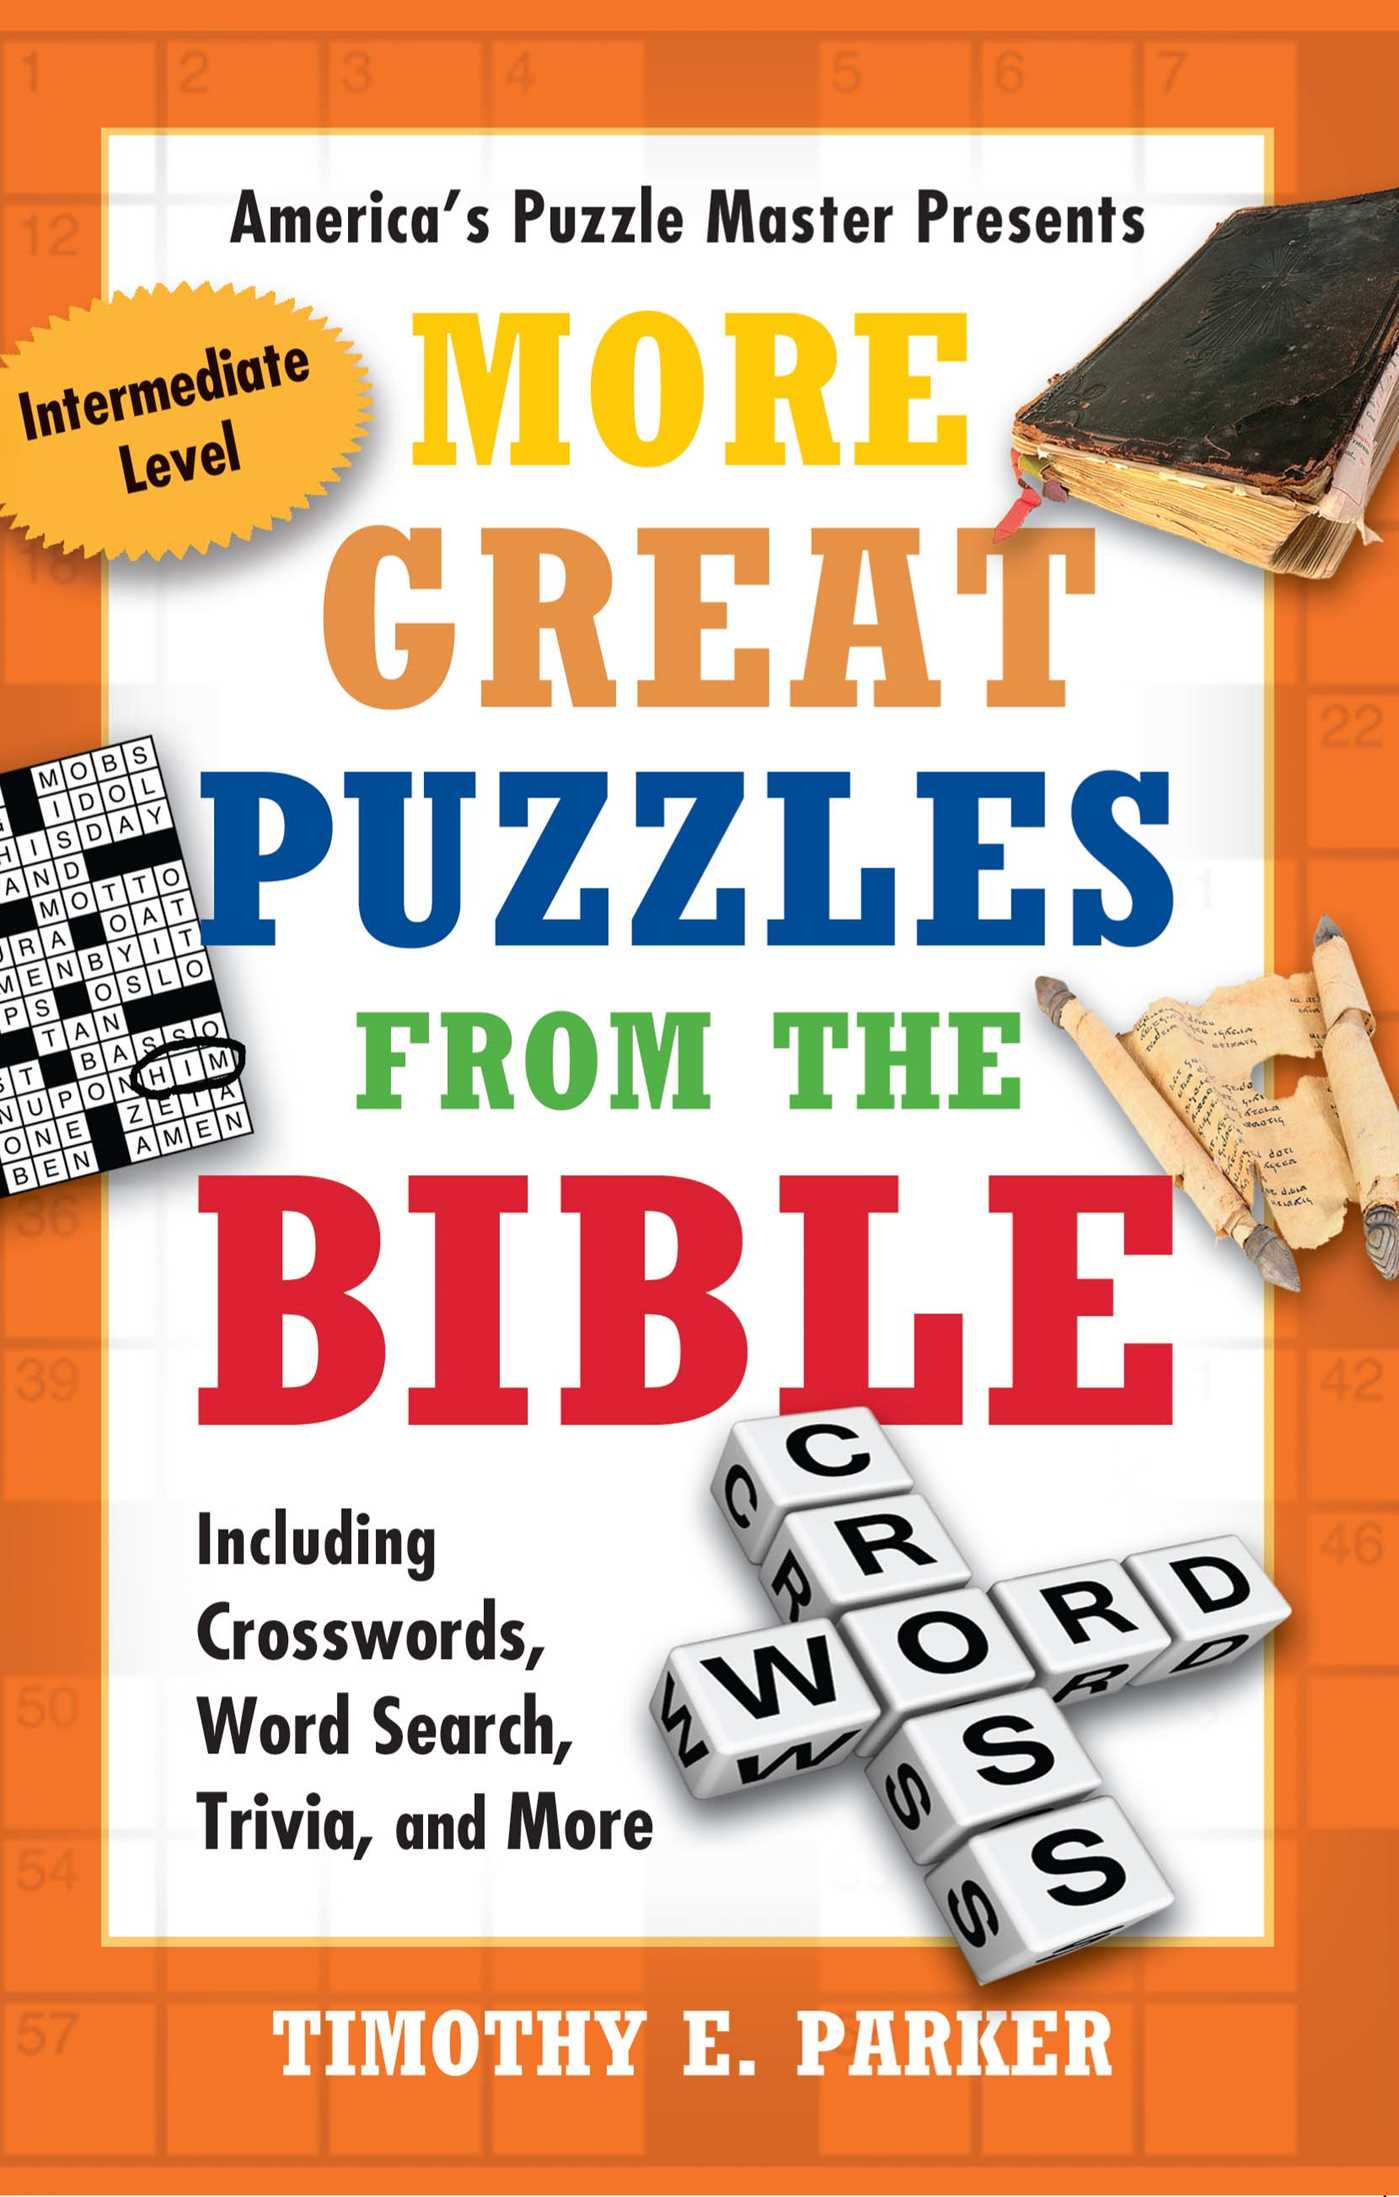 More-great-puzzles-from-the-bible-9781439192283_hr